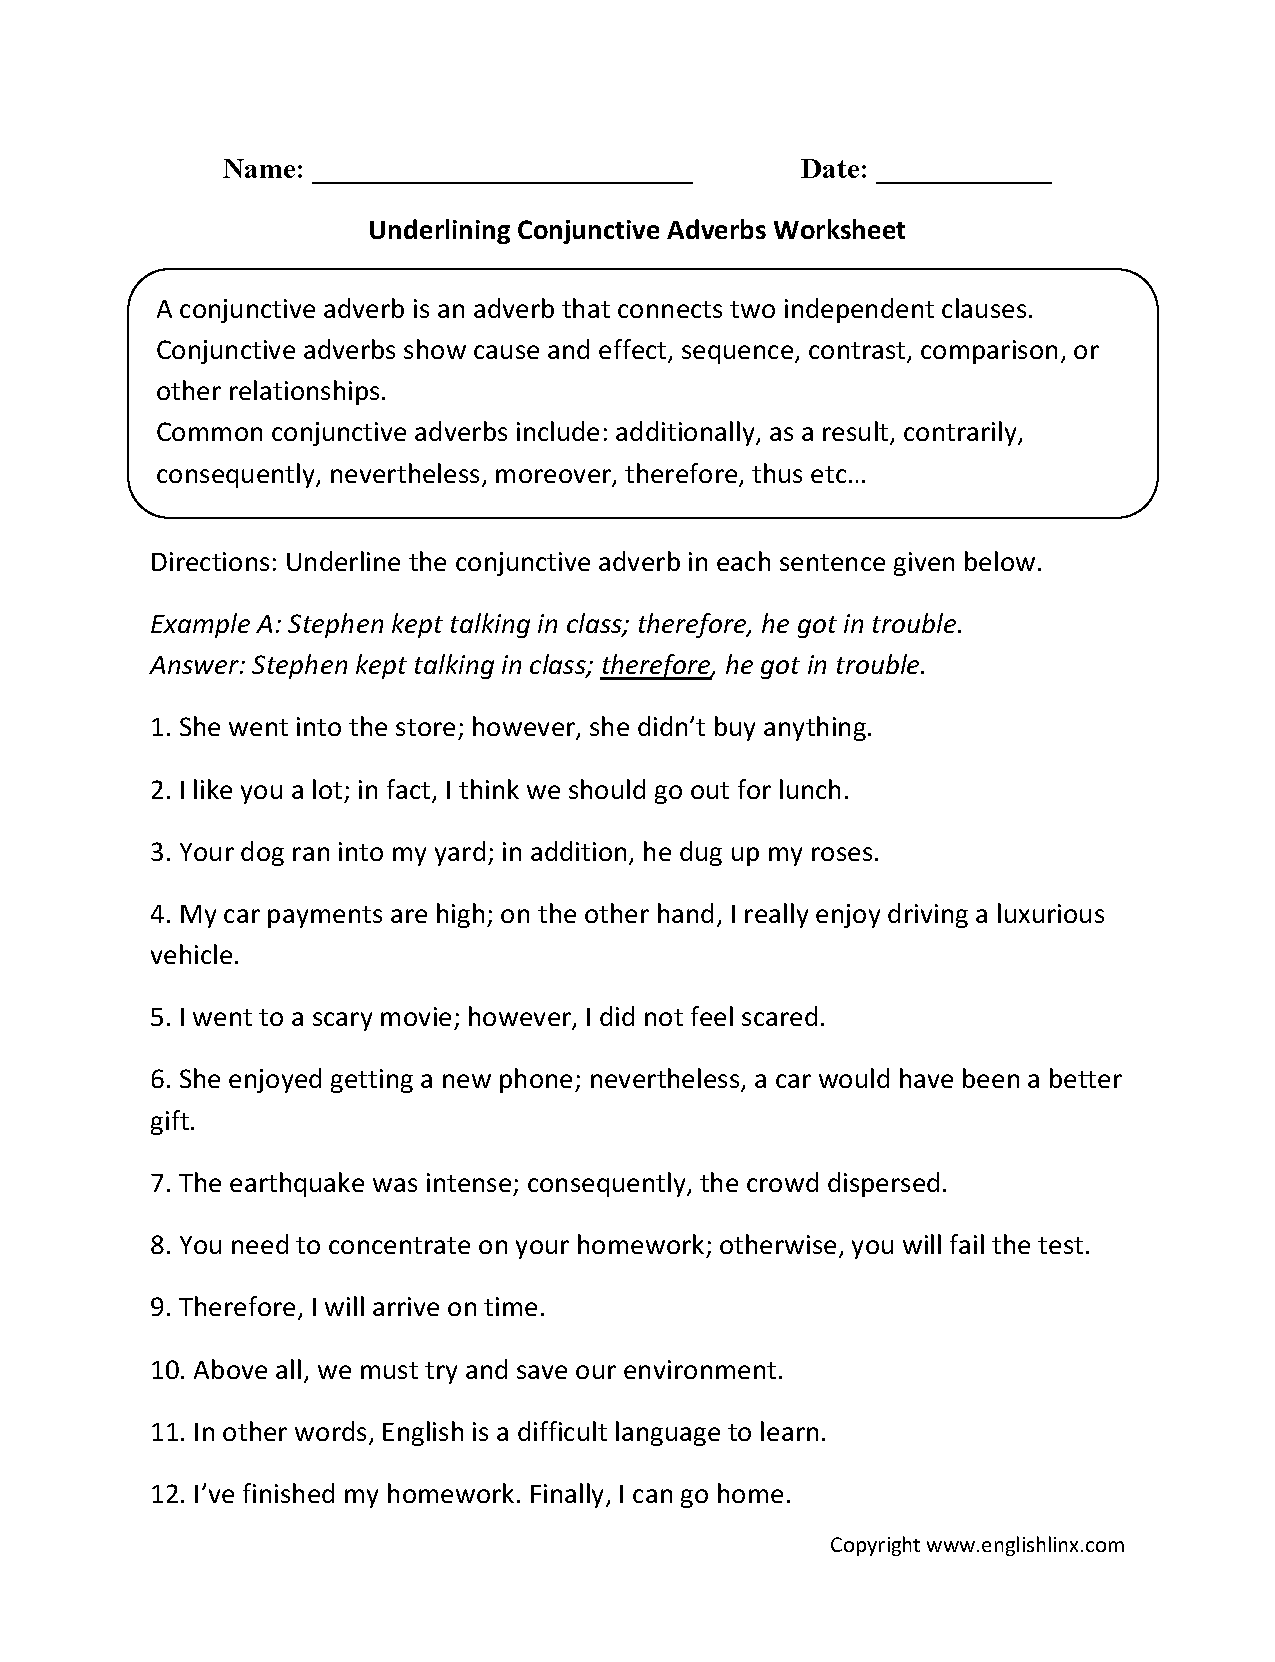 Weirdmailus  Inspiring Englishlinxcom  Conjunctions Worksheets With Lovable Worksheet With Agreeable Worksheet For Kinder Also Tangram Puzzle Worksheets In Addition Algebra Year  Worksheets And Genetics And Heredity Worksheets As Well As Learning Colors Worksheets For Preschoolers Additionally Worksheets On Metaphors And Similes From Englishlinxcom With Weirdmailus  Lovable Englishlinxcom  Conjunctions Worksheets With Agreeable Worksheet And Inspiring Worksheet For Kinder Also Tangram Puzzle Worksheets In Addition Algebra Year  Worksheets From Englishlinxcom